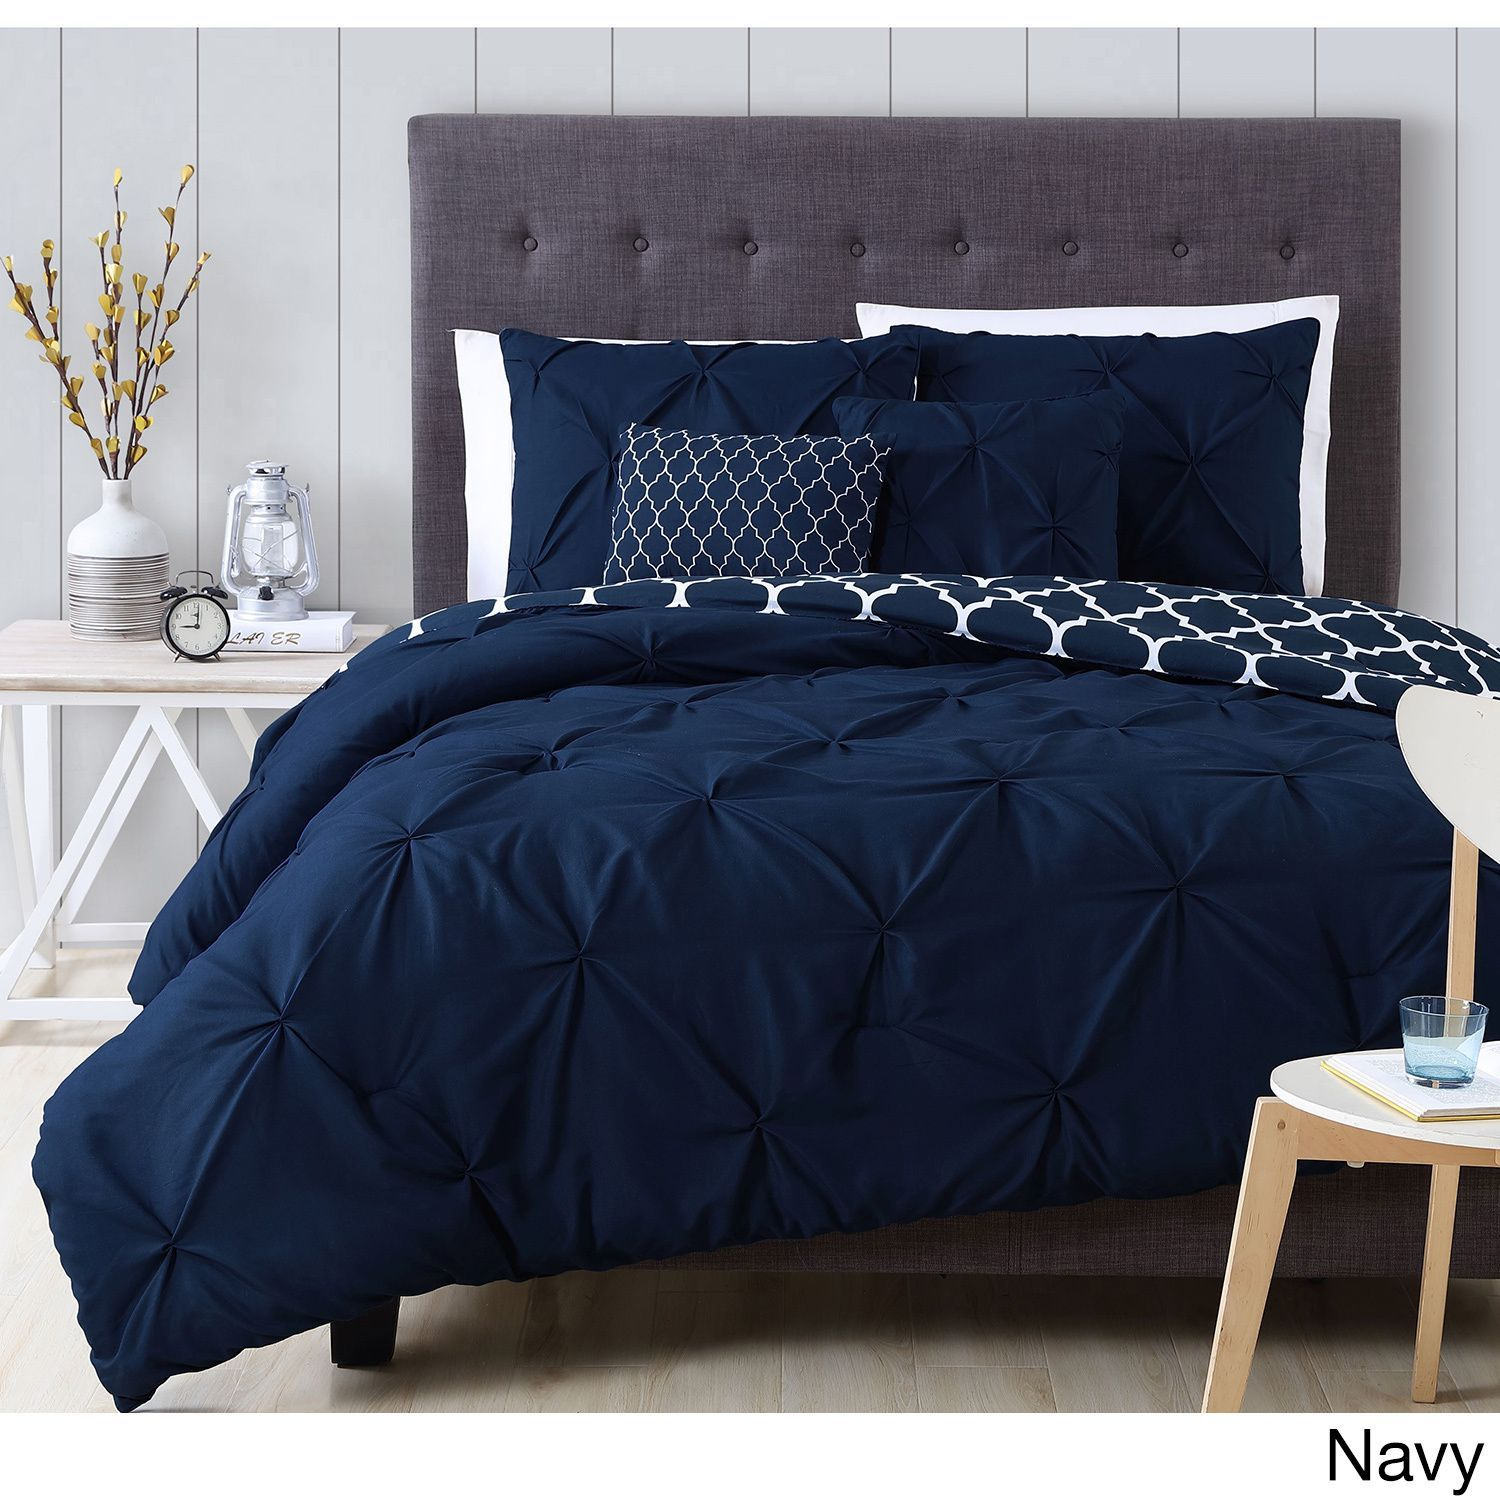 Avondale Manor Madrid 5 Piece Comforter Set King Navy